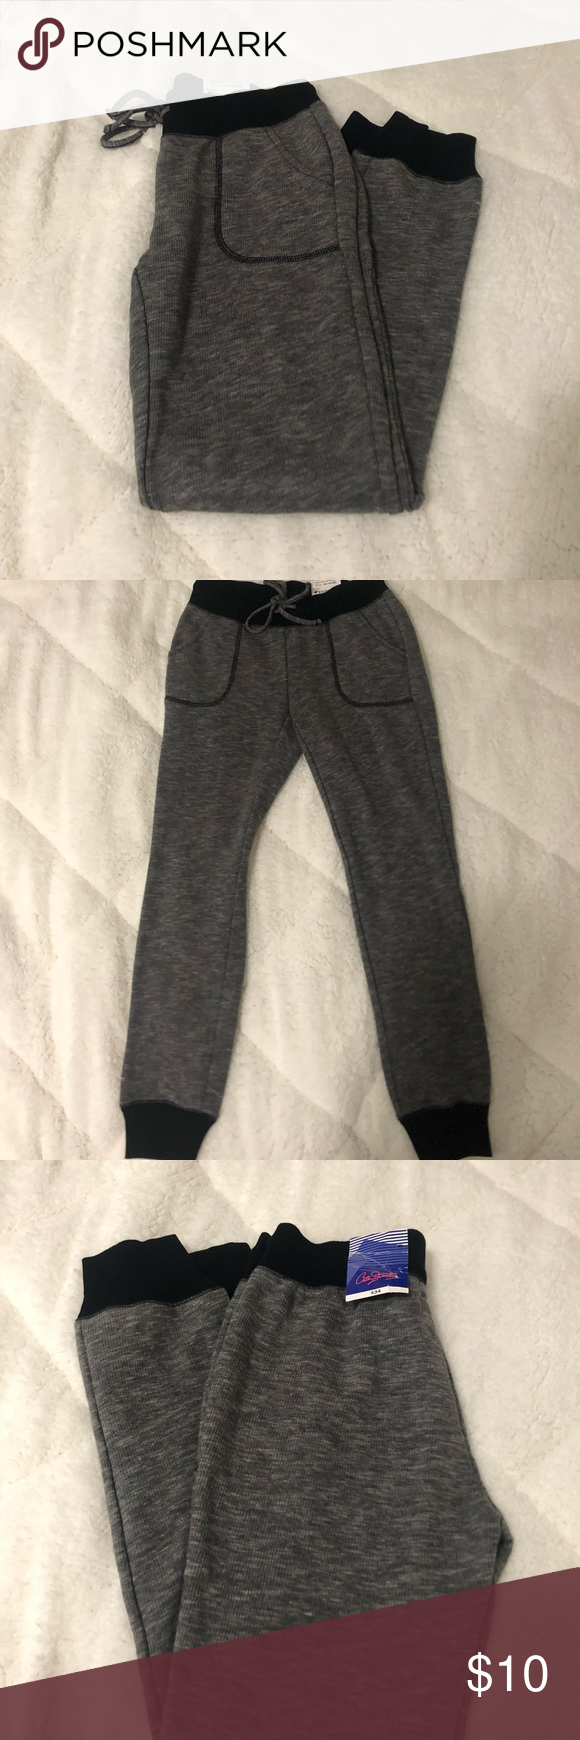 ffeb7ef8e643b Joggers by the brand City Streets from JCPenney Grey joggers with black  band. City Streets Pants Track Pants   Joggers